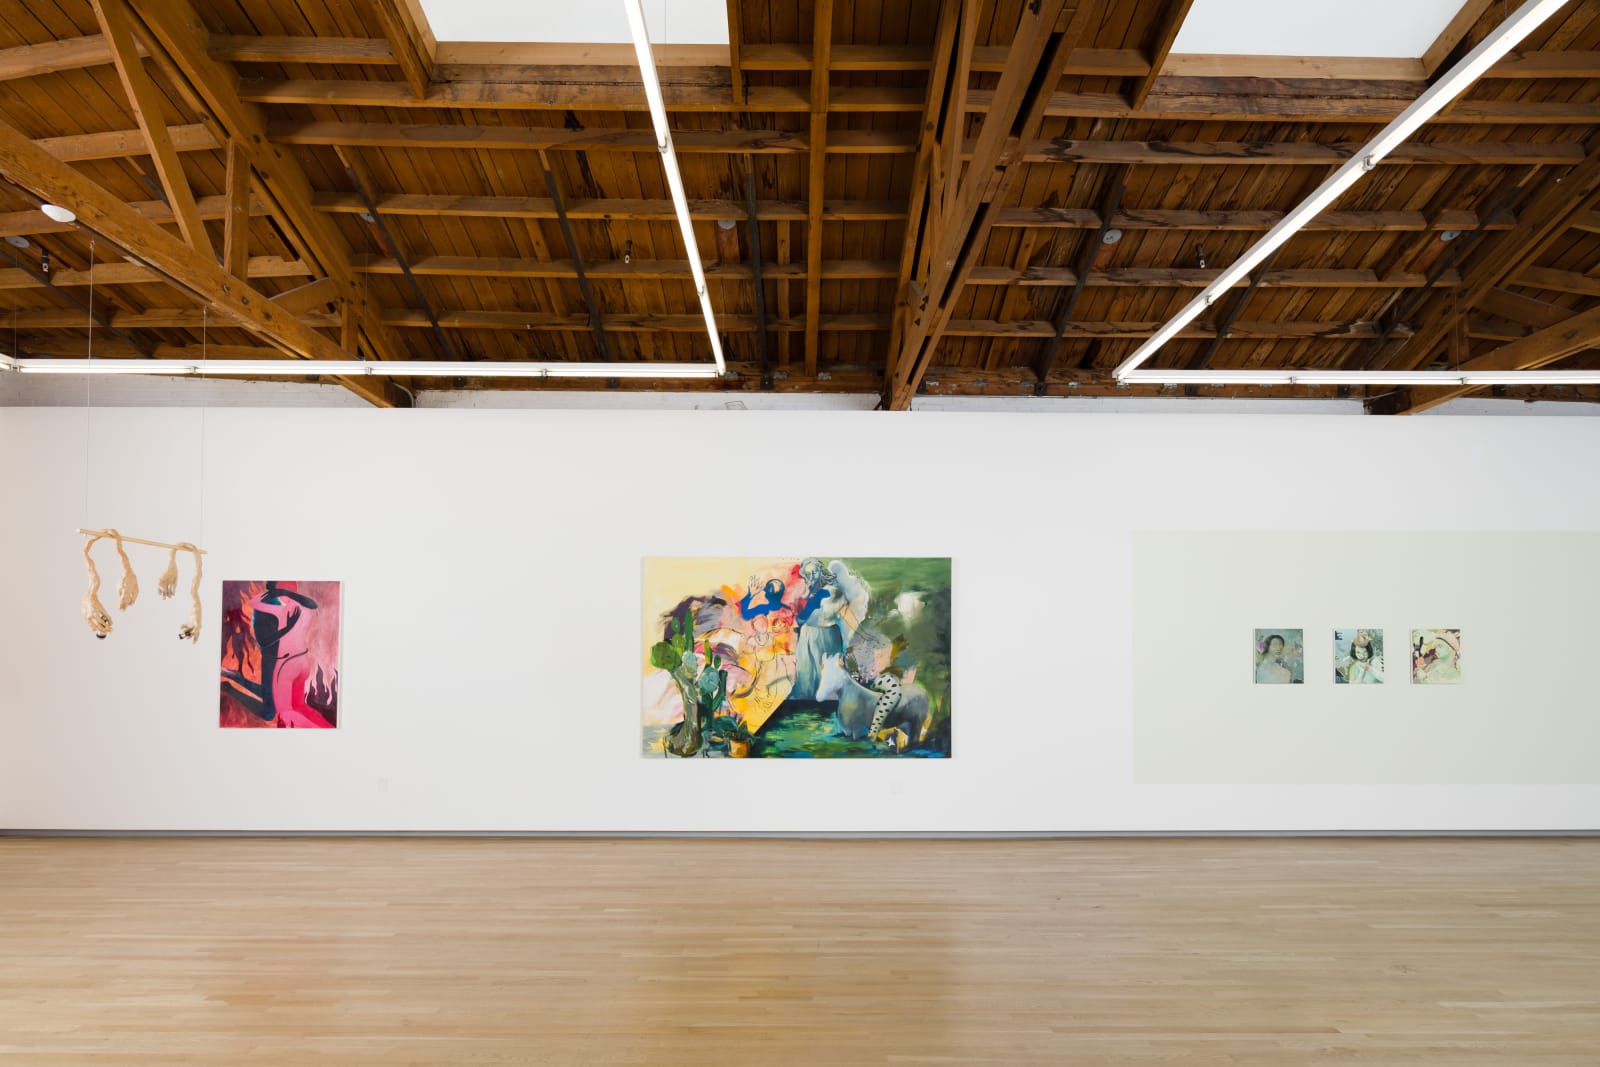 Roni Shneior, Naudline Pierre, Sara Issakharian, and Katie Dorame in By The Lights of Their Eyes, 2018. Shulamit Nazarian, Los Angeles